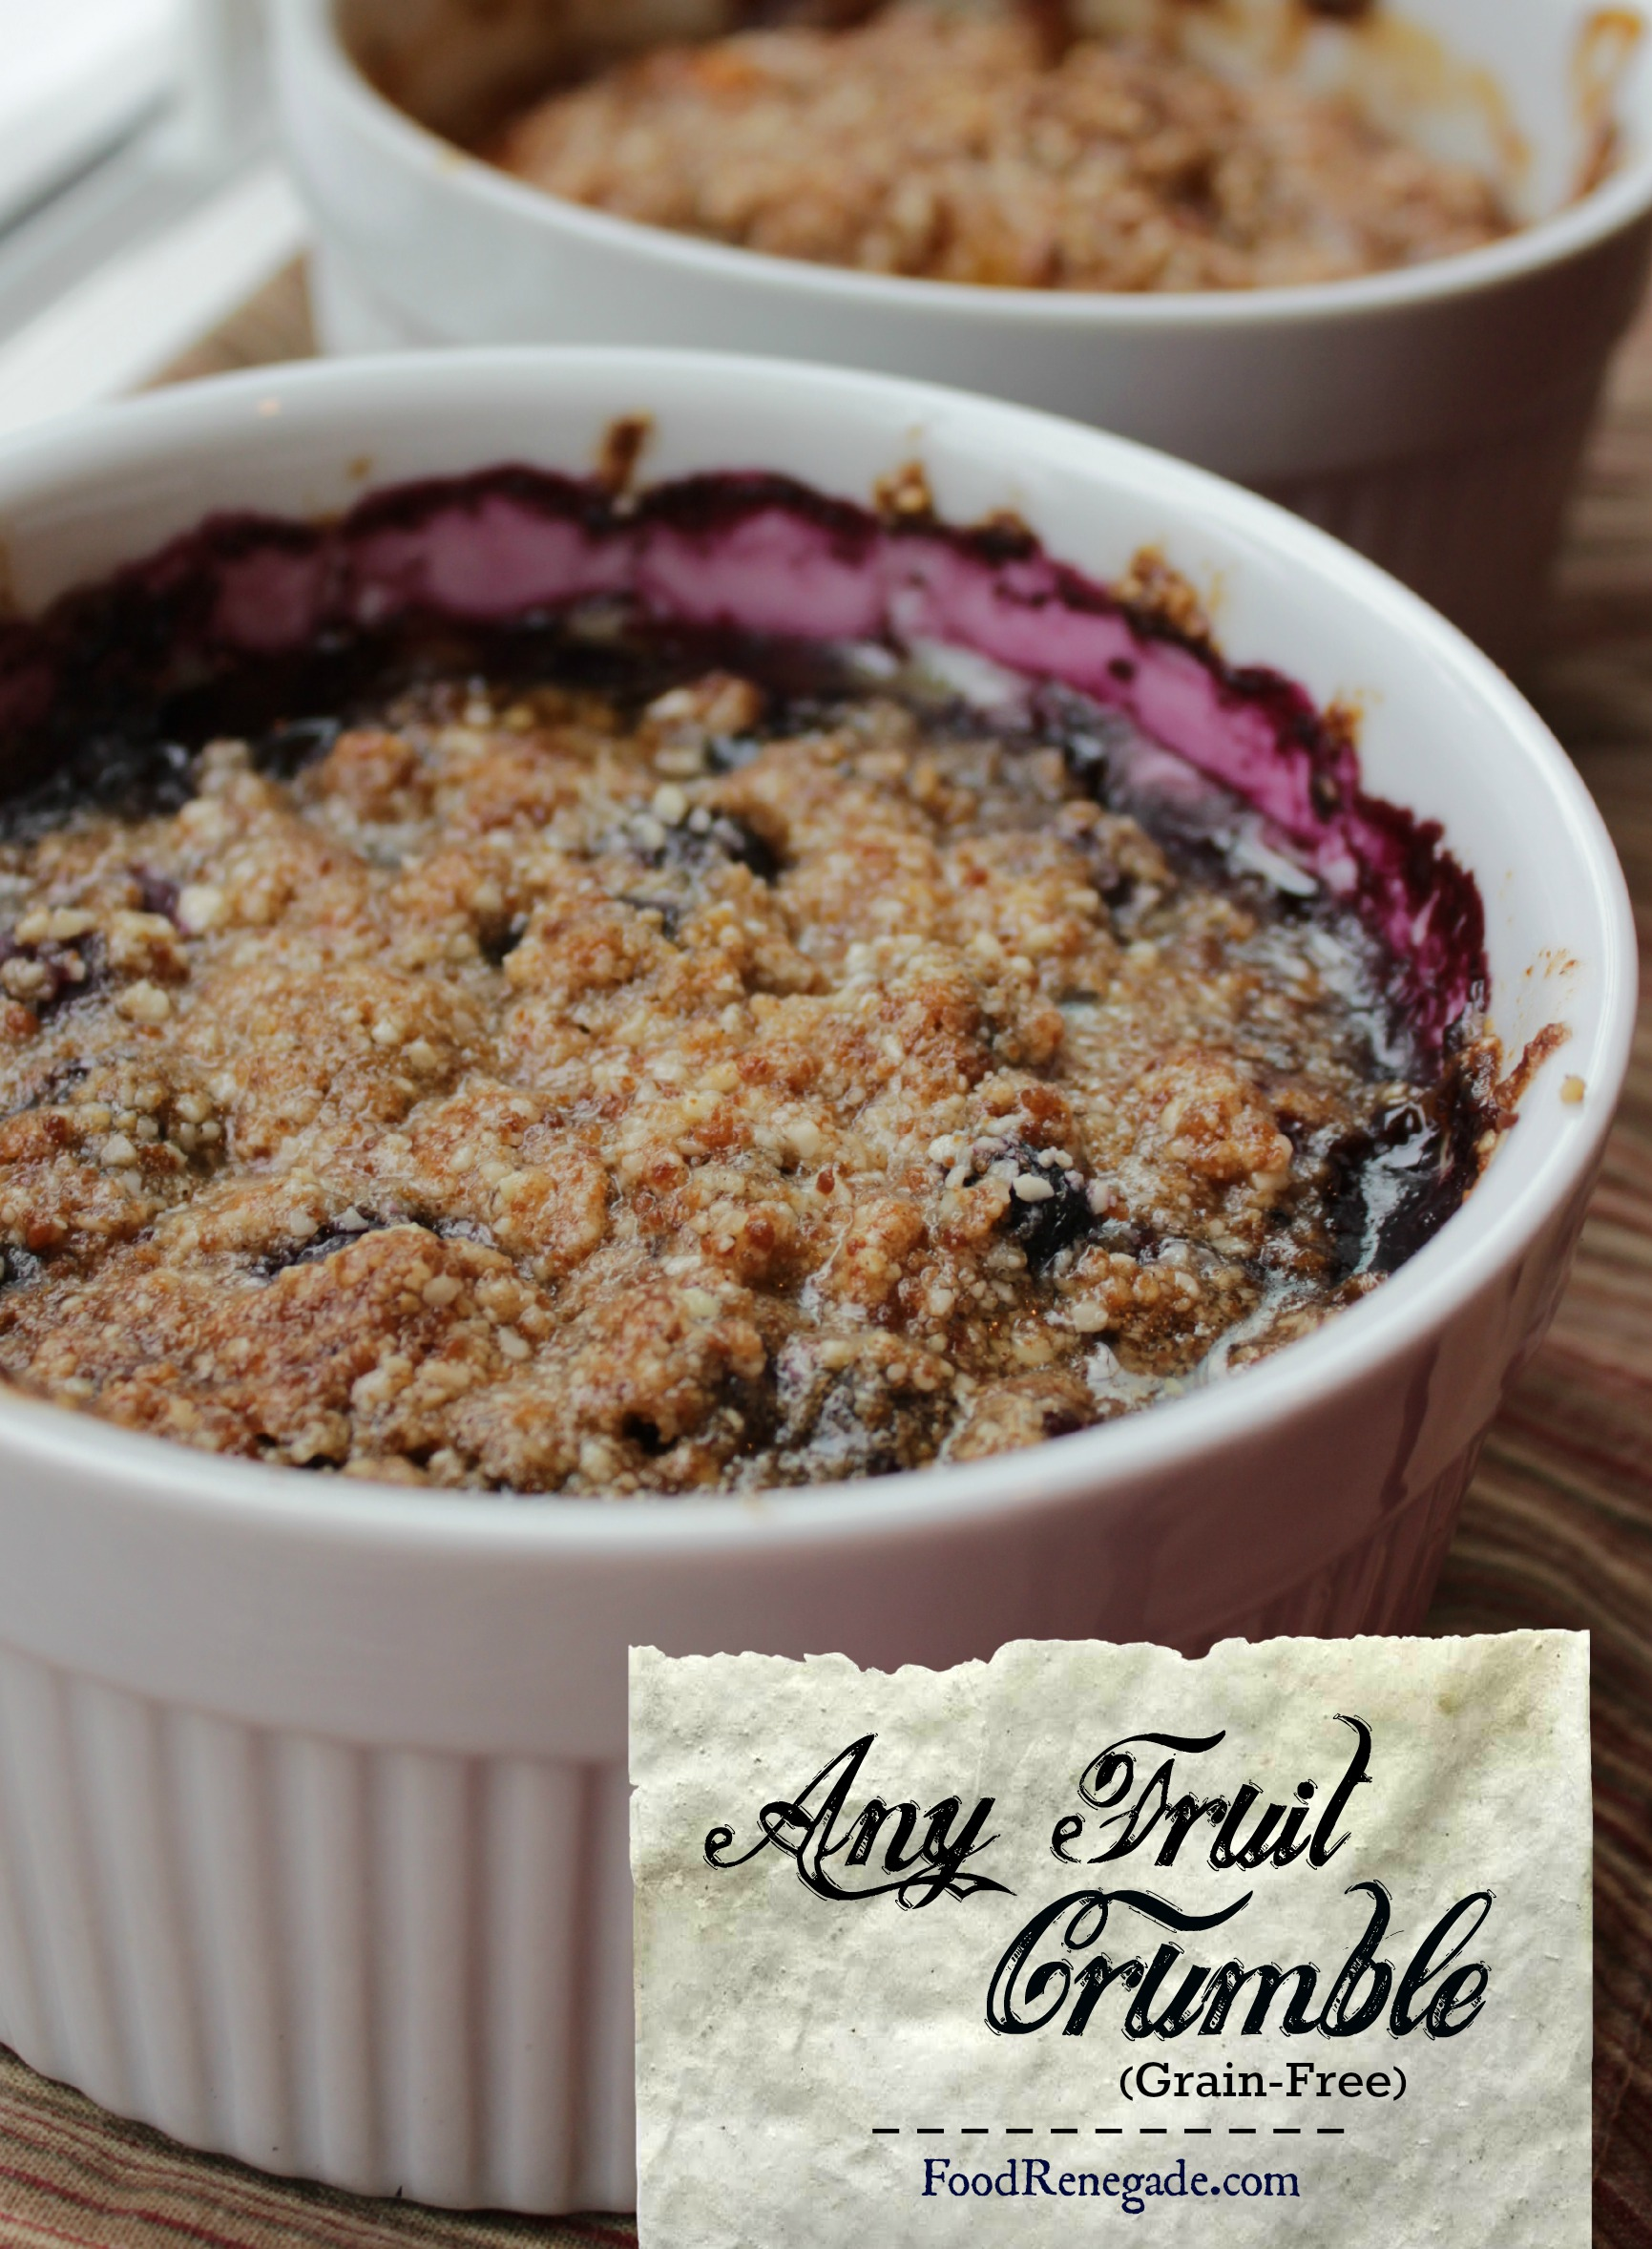 ... crumble fruit crumble recipe leite s warm any fruit crumble